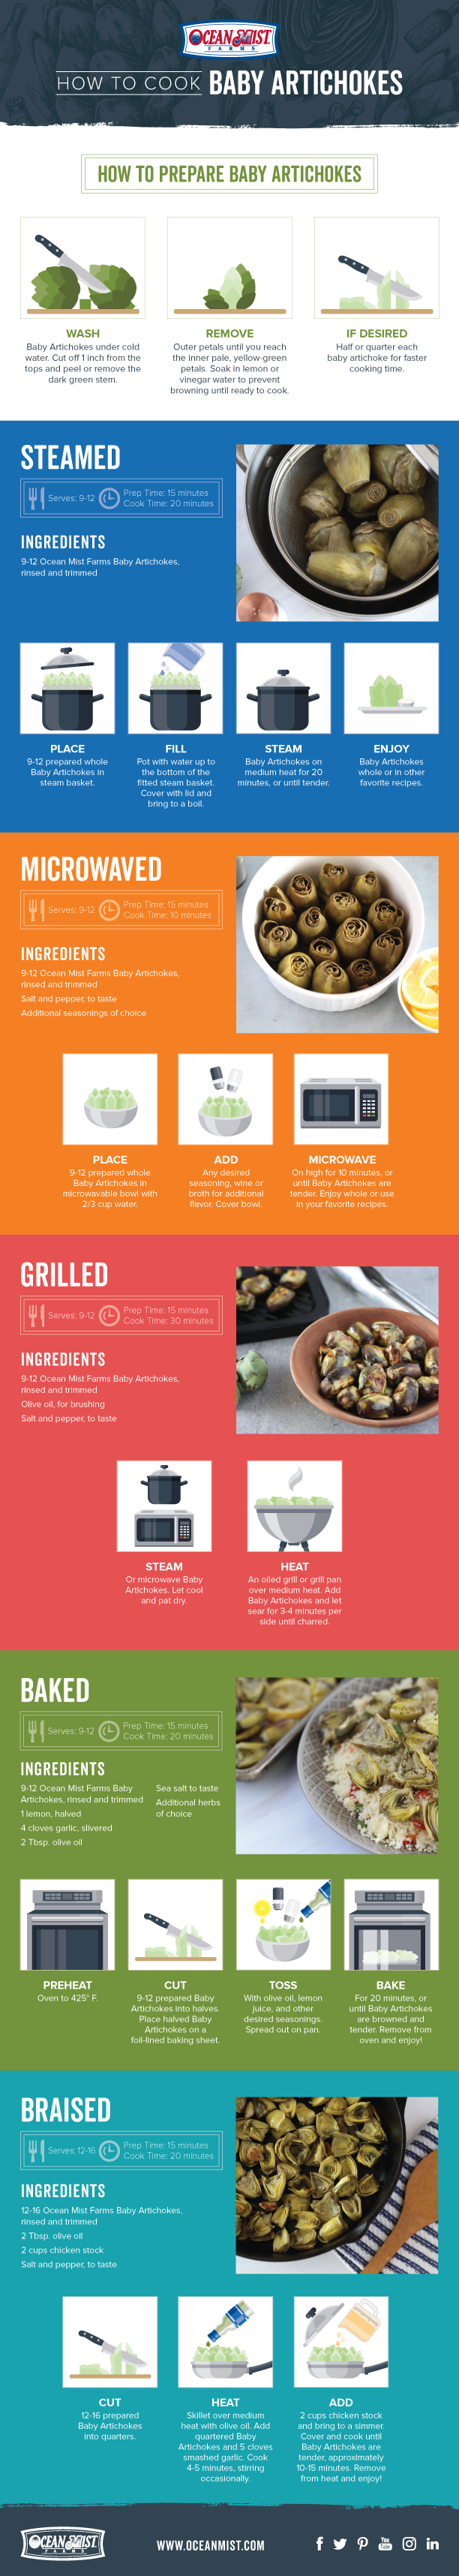 OM_How-to-Cook-Baby-Artichokes_Infographic